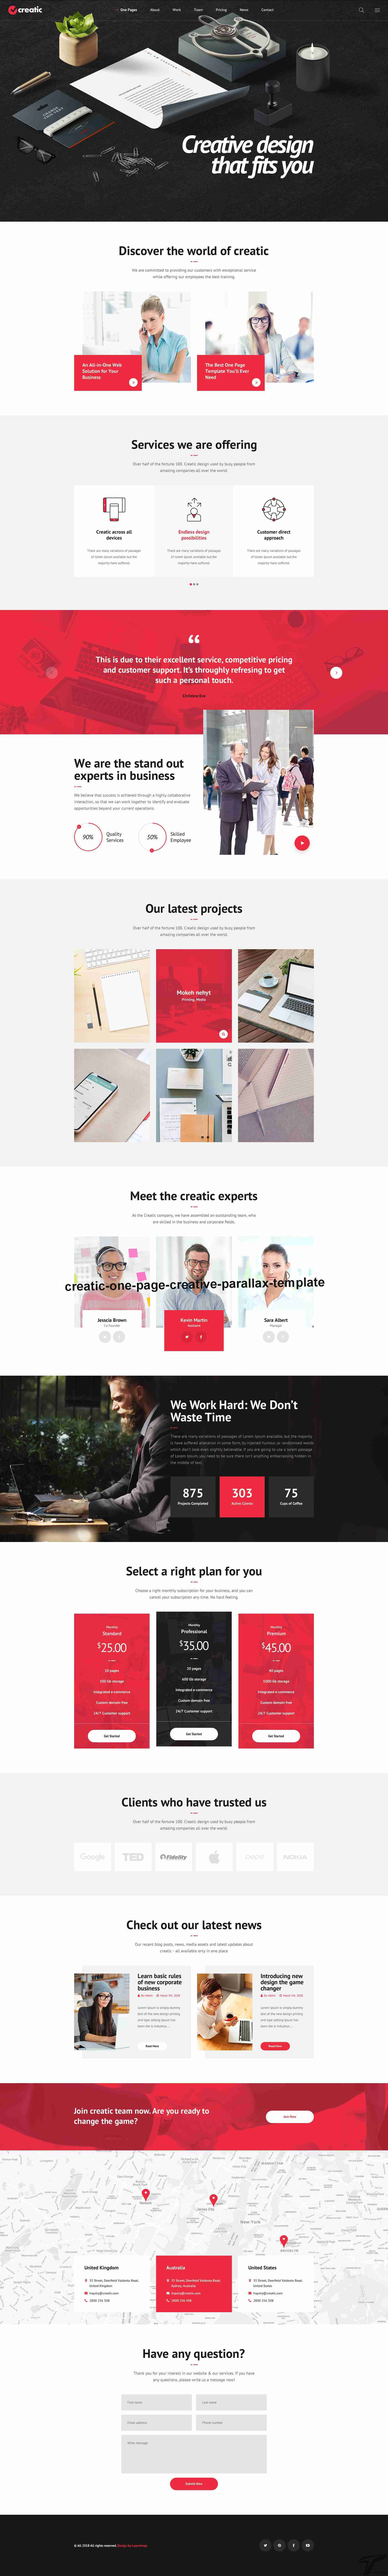 https://images.besthemes.com/images/h1_creatic-one-page-creative-parallax-template6-_-244672768/previews/06_Home.jpg